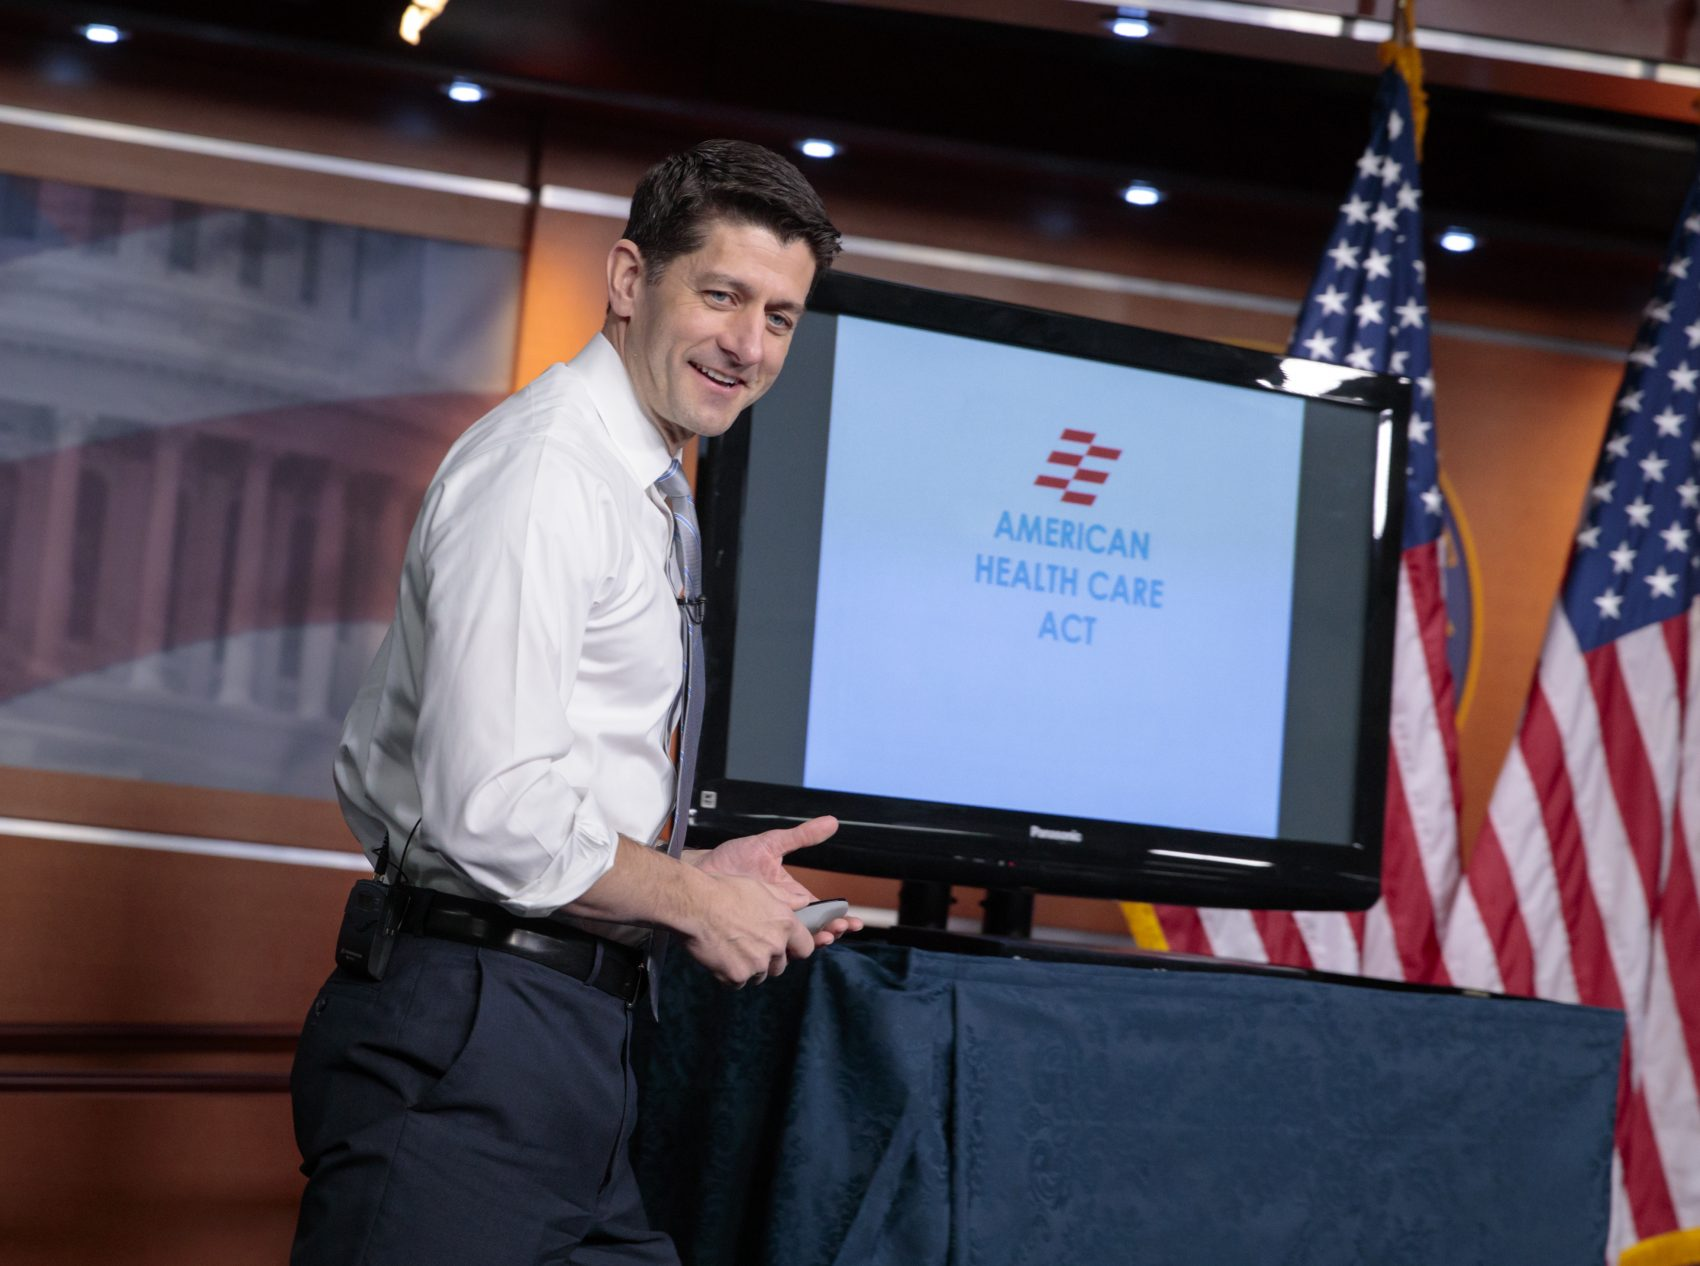 House Speaker Paul Ryan uses charts and graphs to make his case for the GOP's plan to repeal and replace the Affordable Care Act on March 9. (J. Scott Applewhite/AP)